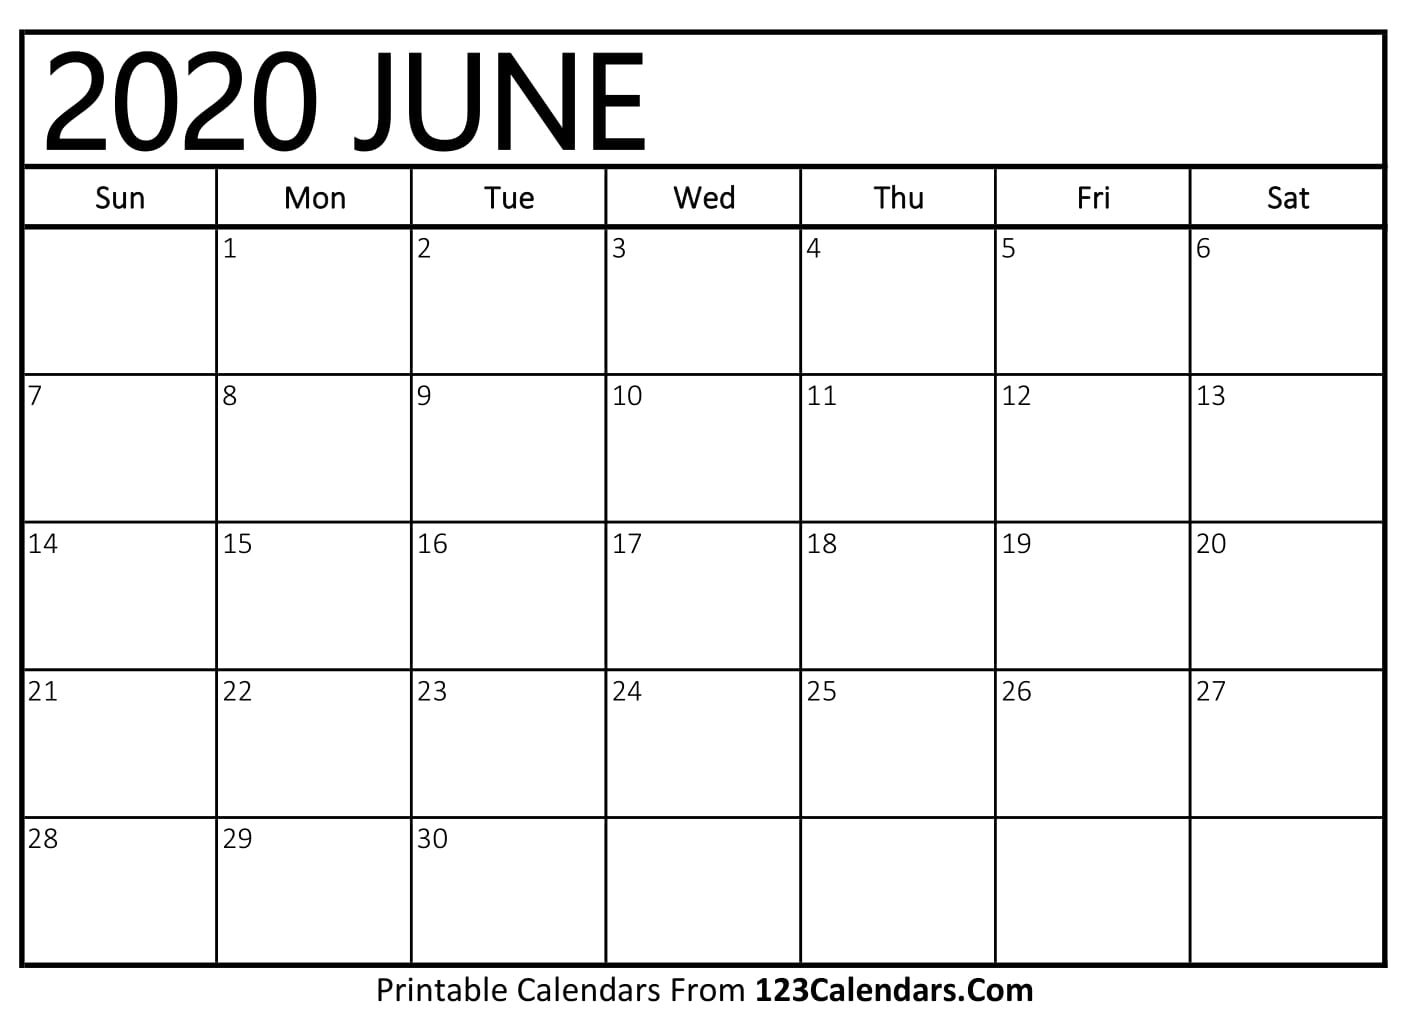 June 2020 Printable Calendar | 123Calendars inside 2020 Printable Liturgical Calendar Free